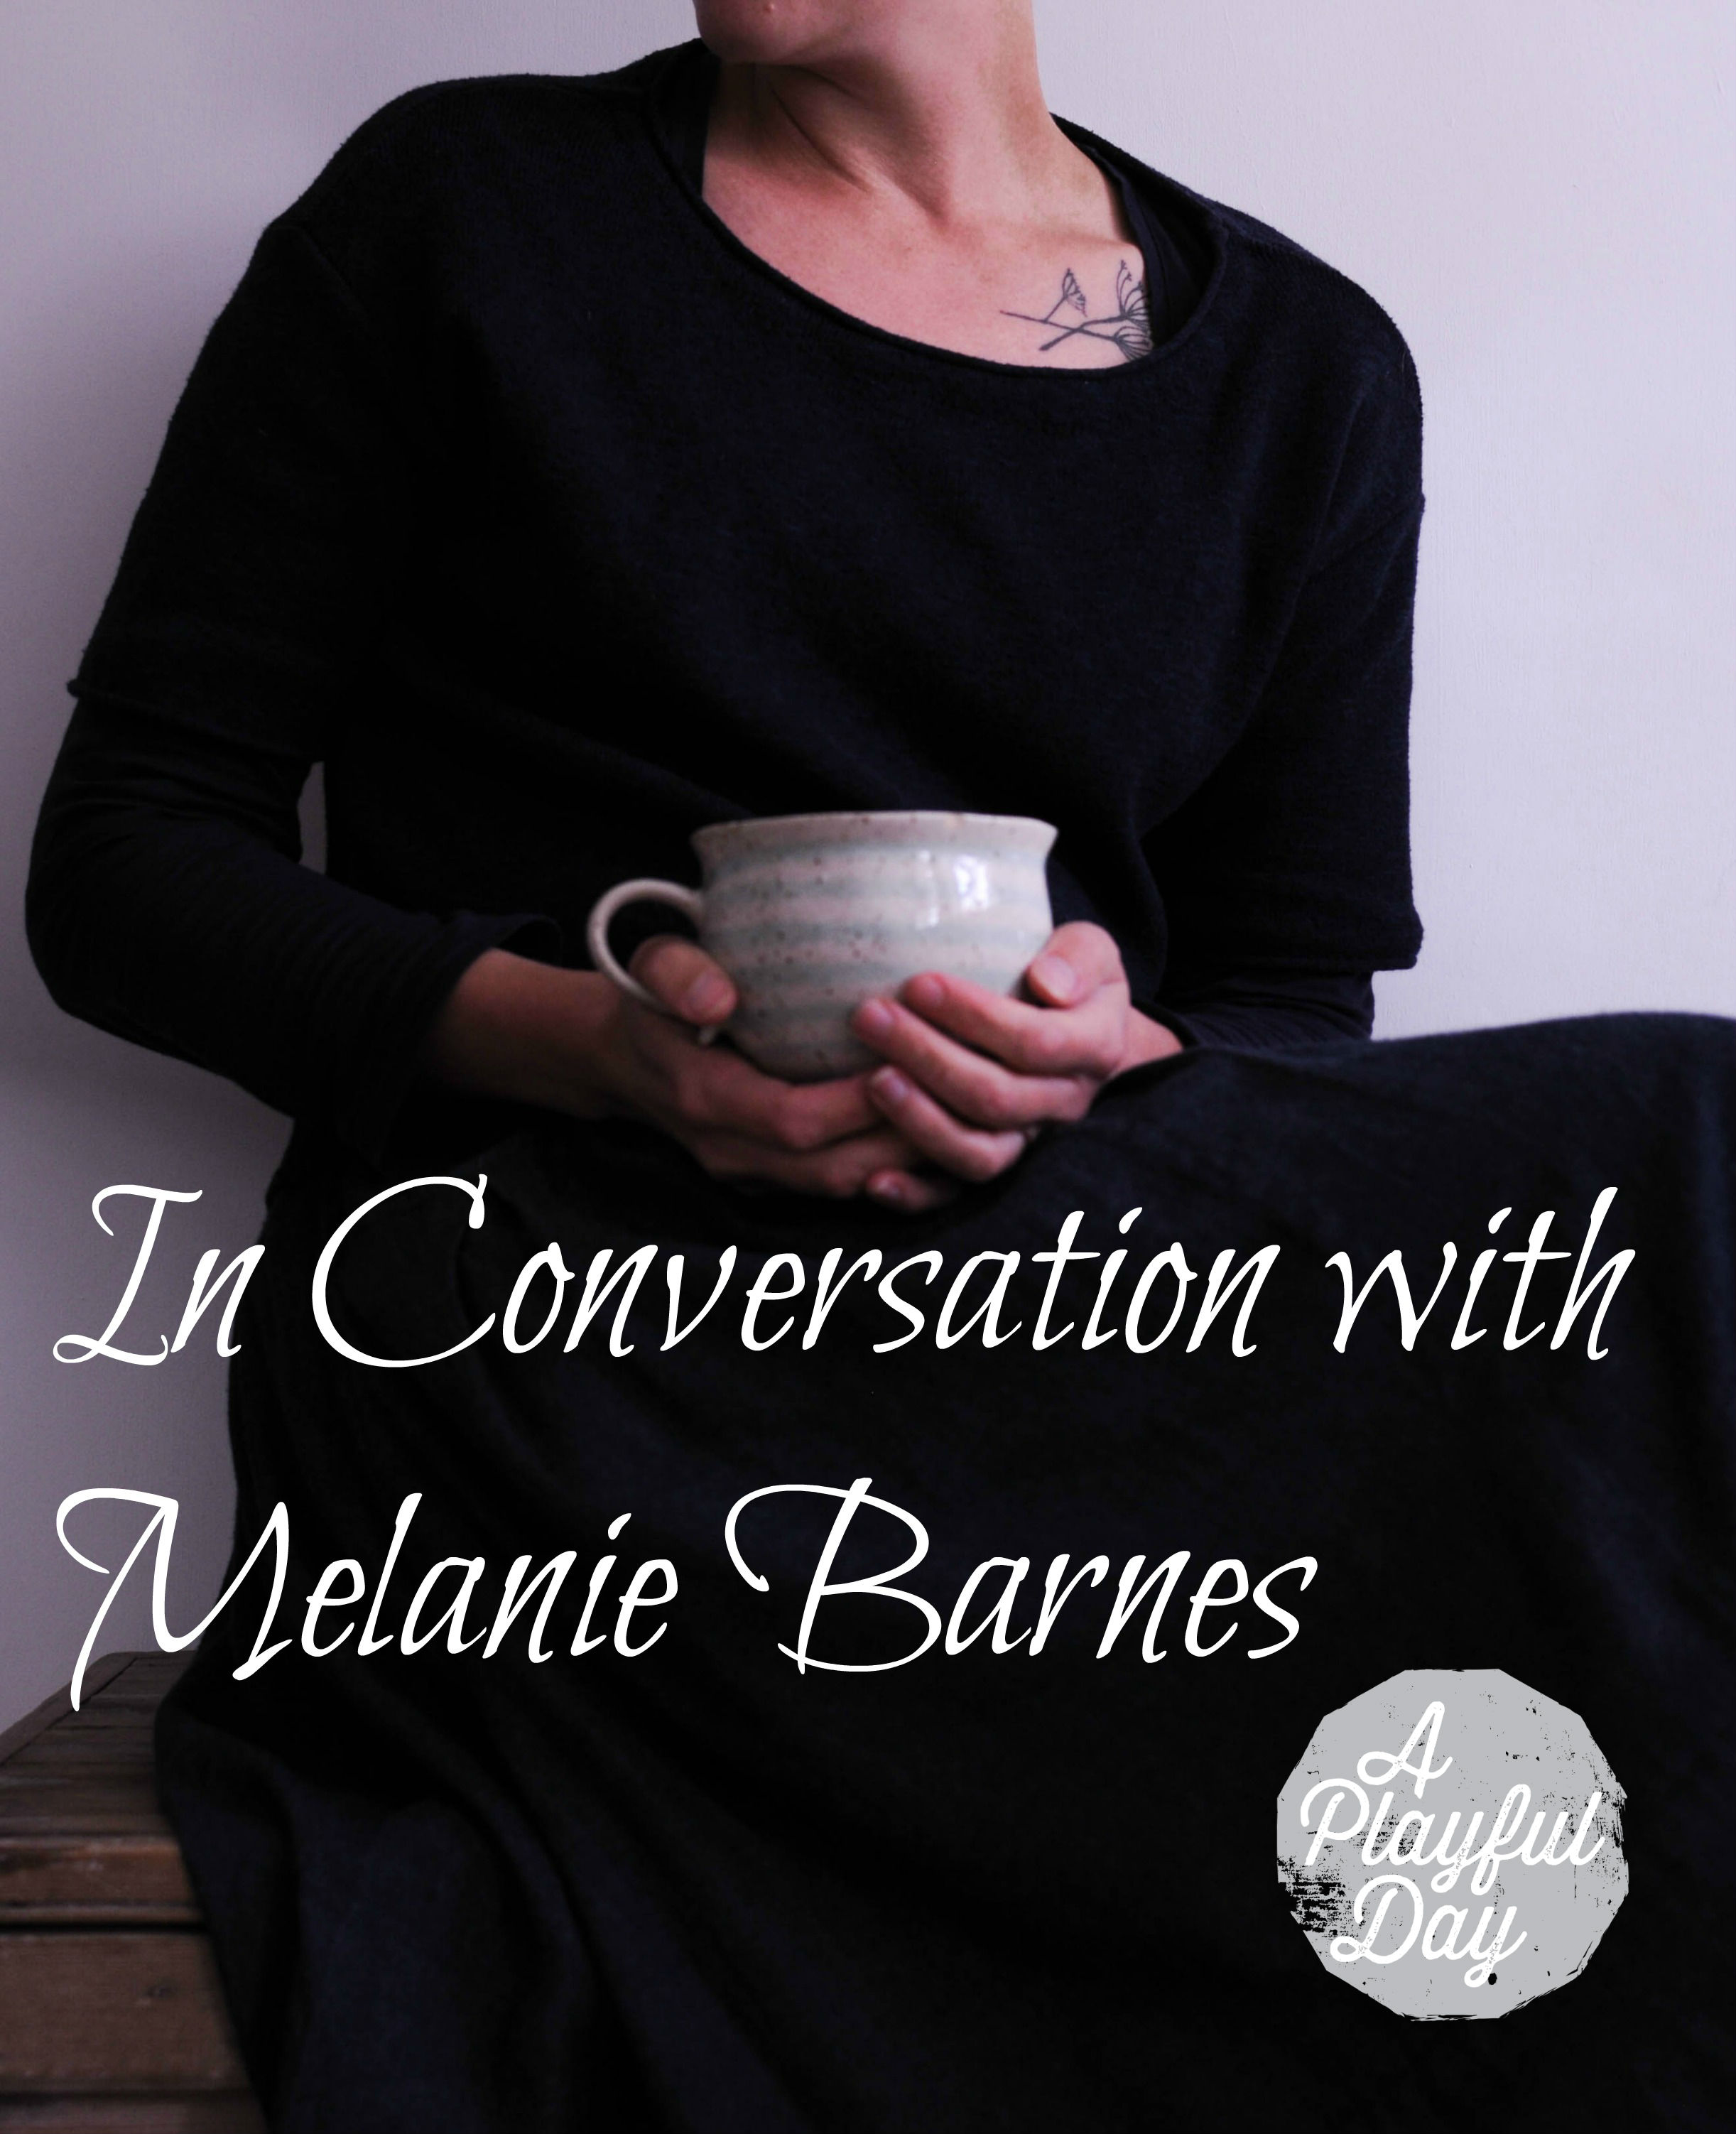 The APD Podcast, In Conversation with Melanie Barnes